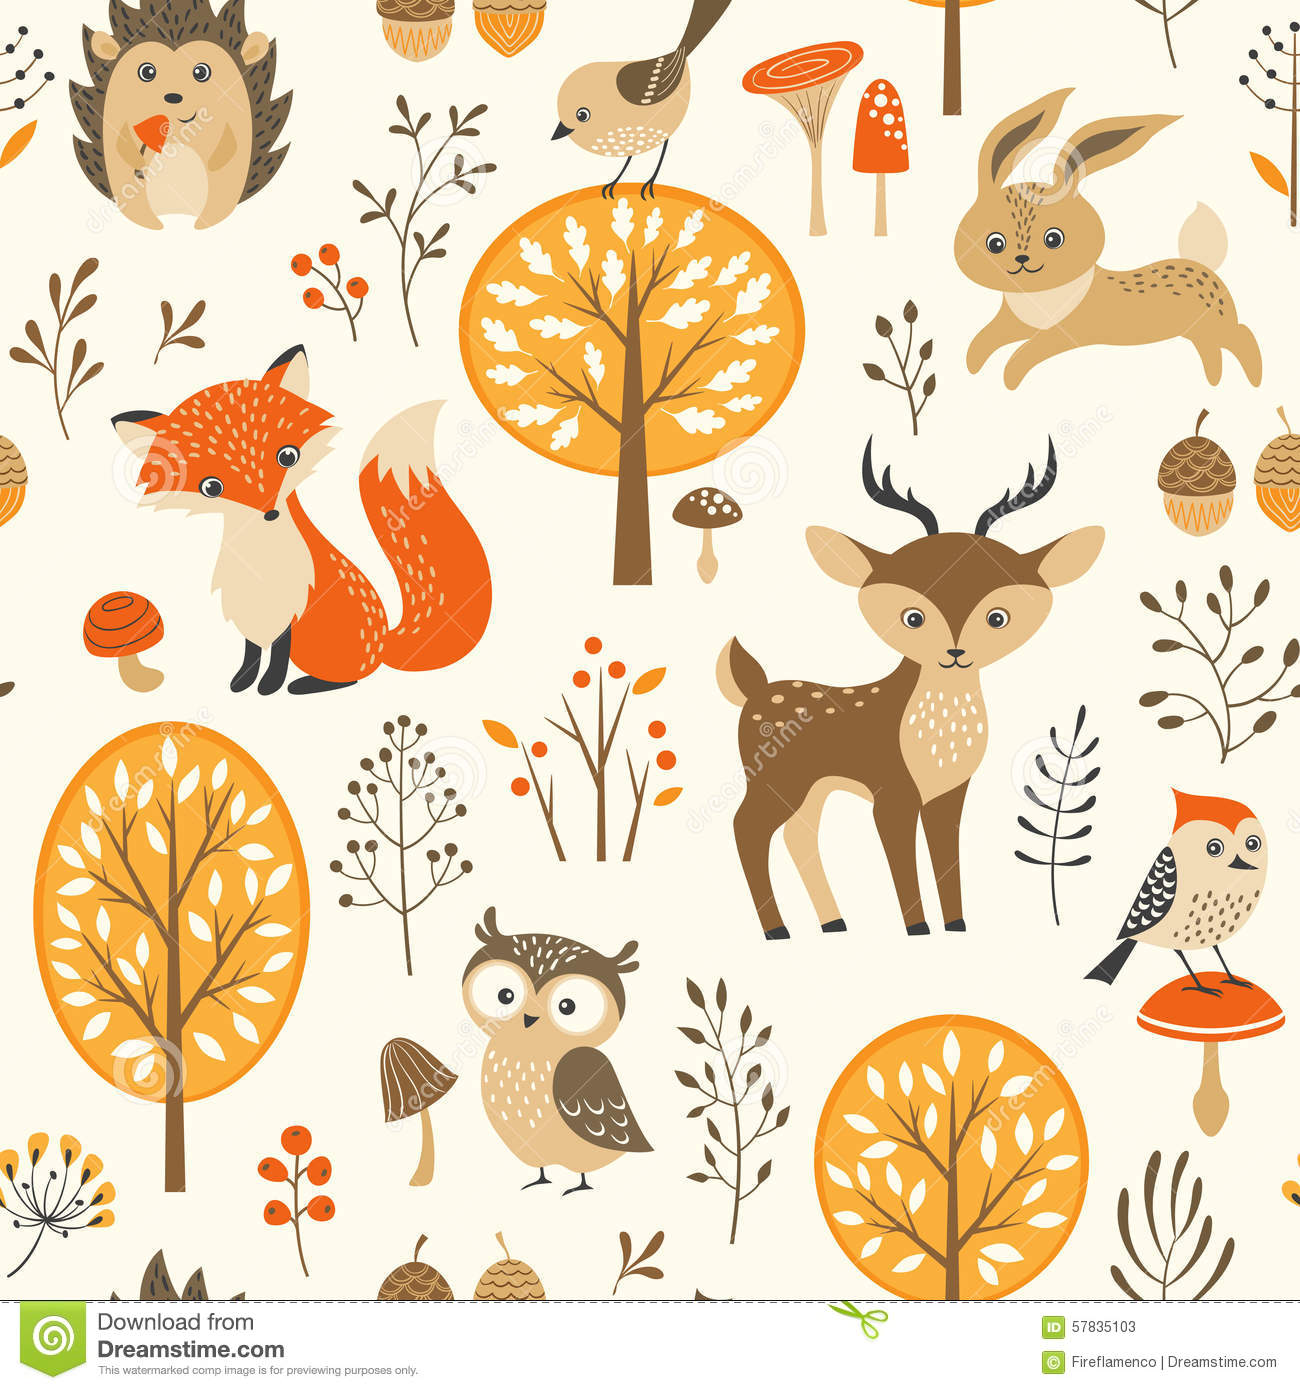 Hd Wallpaper Texture Fall Harvest Cute Autumn Forest Pattern Stock Vector Image 57835103